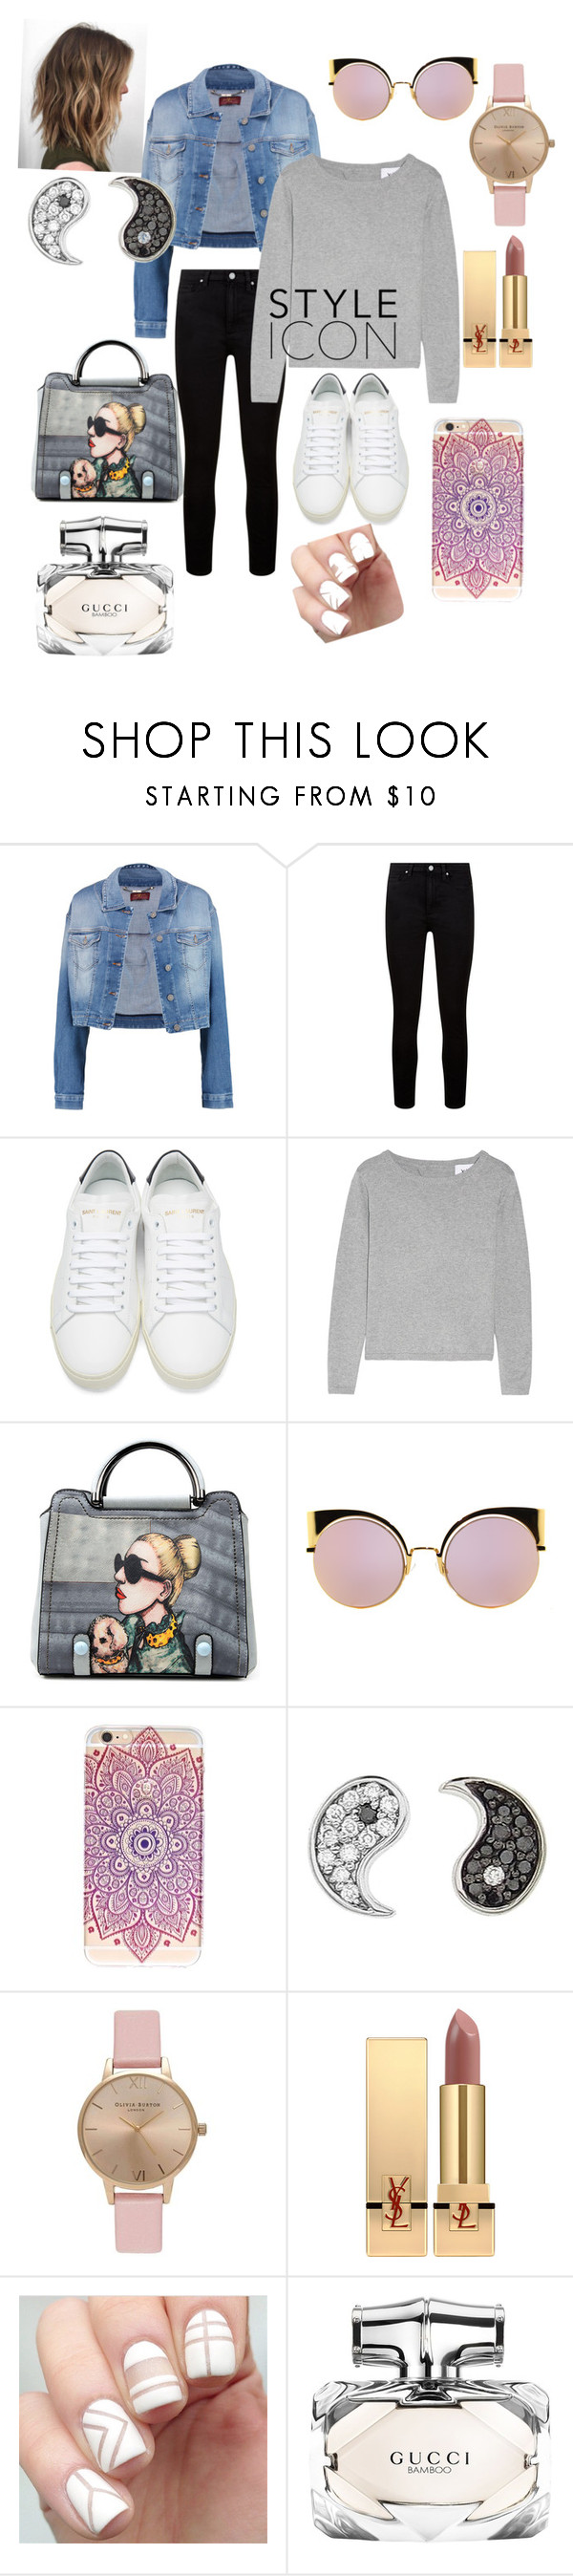 """Collage outfit"" by cutelifelove ❤ liked on Polyvore featuring beauty, 7 For All Mankind, Paige Denim, Yves Saint Laurent, Fendi, Sydney Evan, Topshop and Gucci"